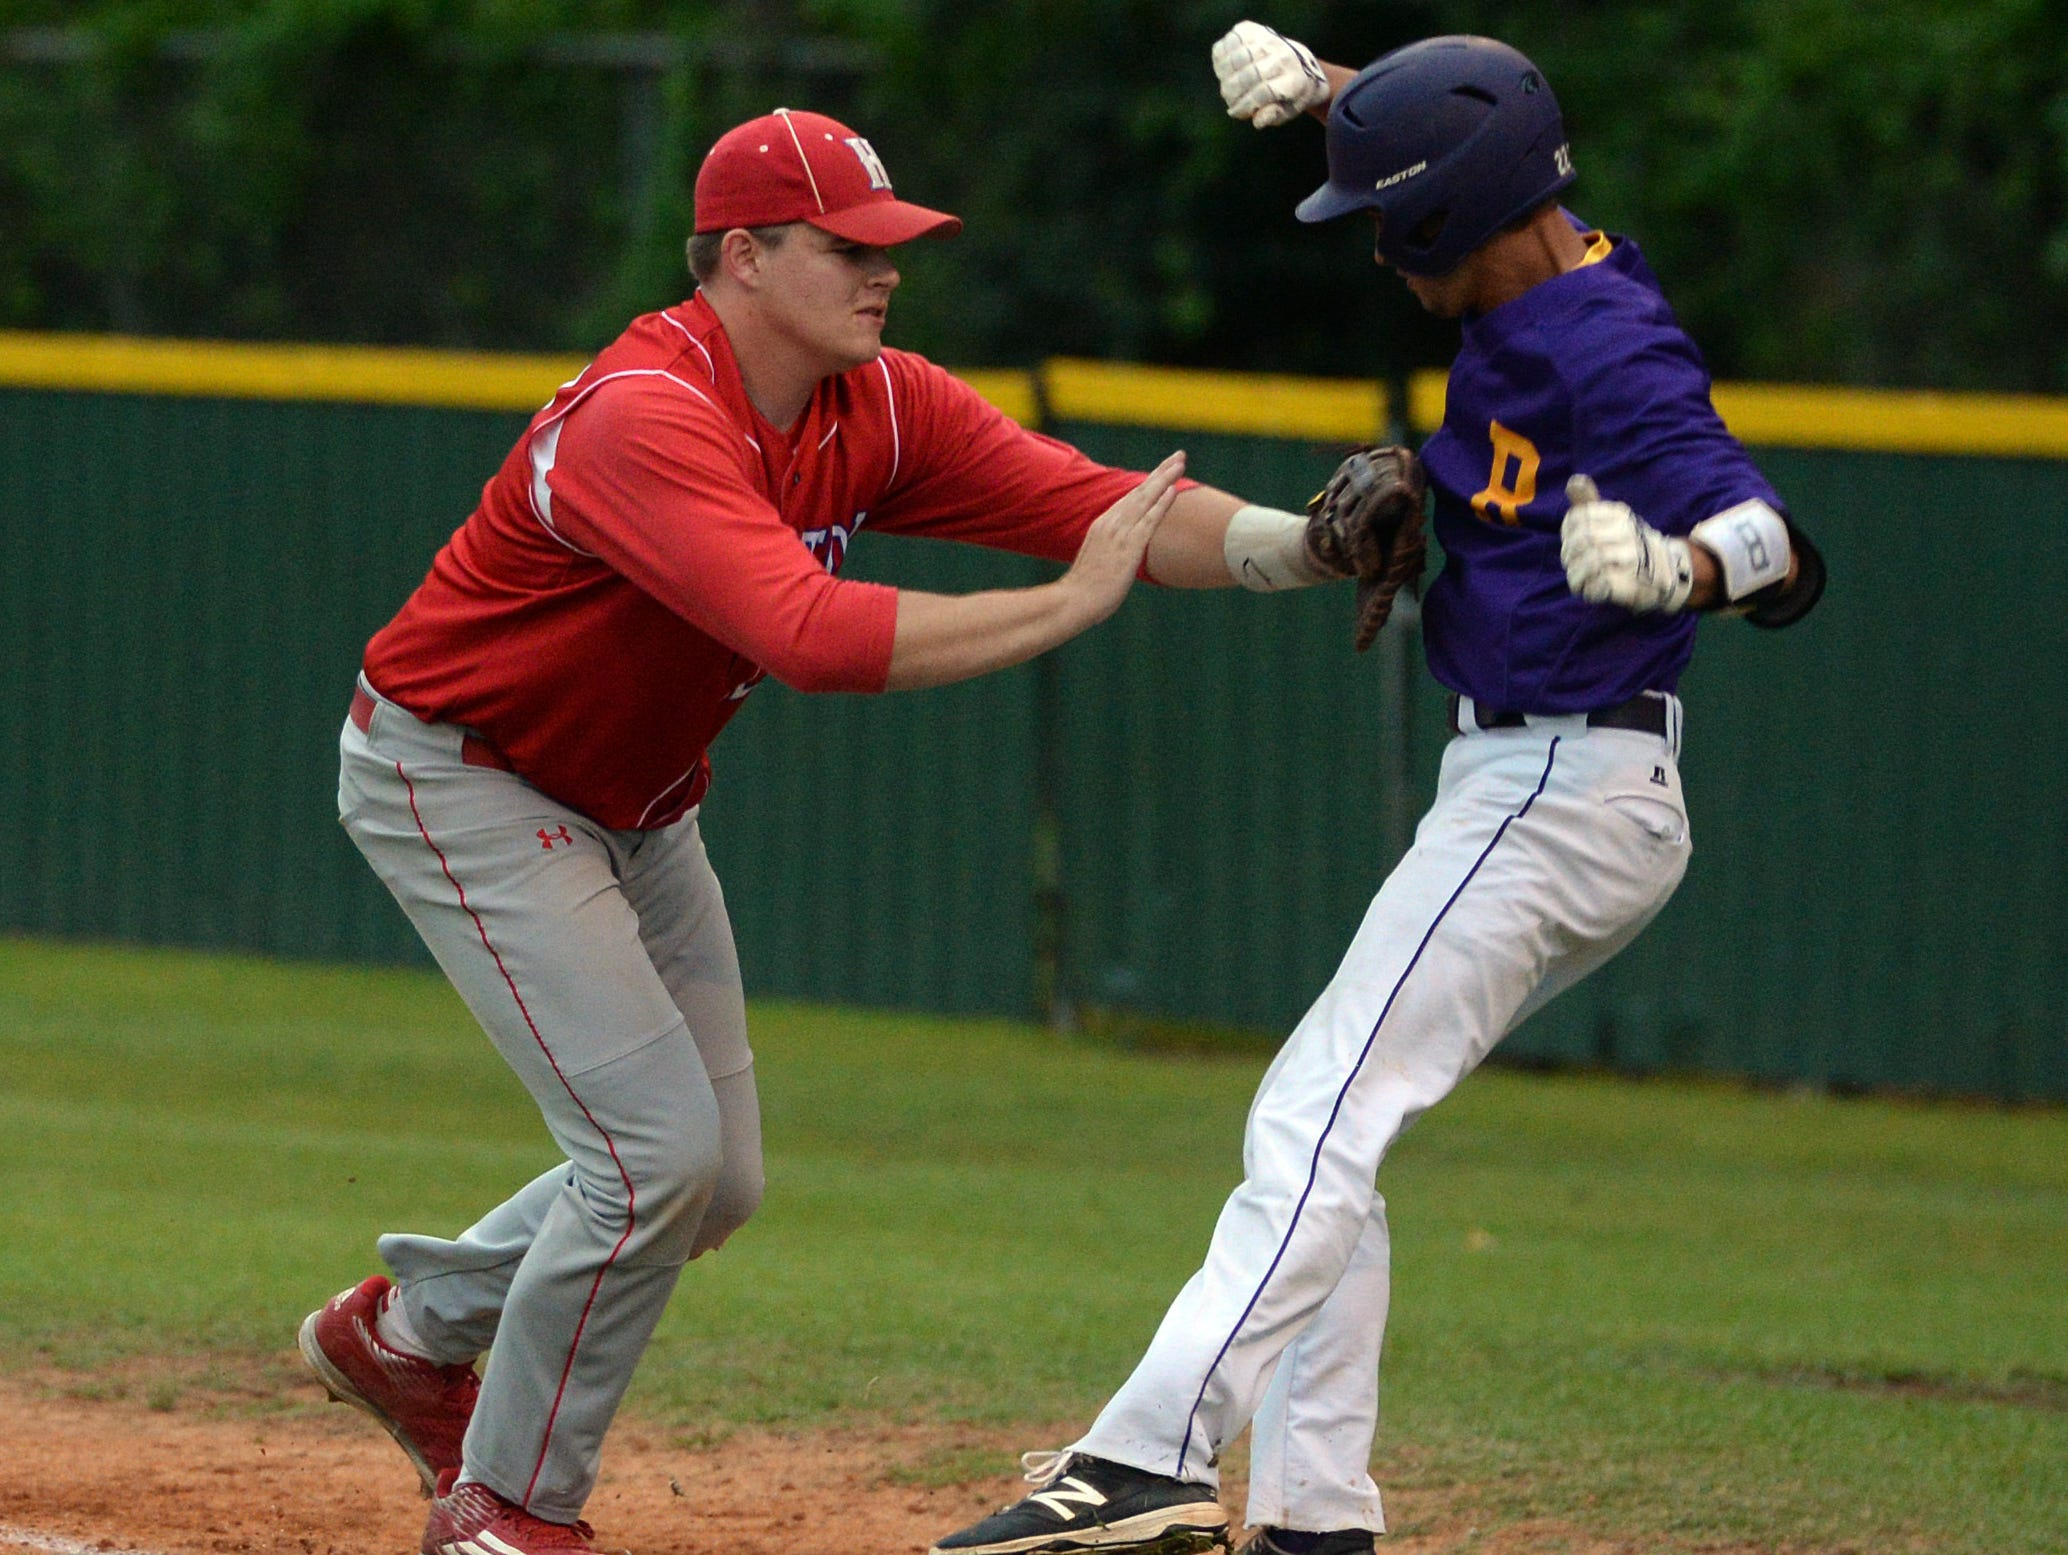 Haughton first baseman Brennan Bockhaus tags out Wyate Brooome to end the 4th inning.